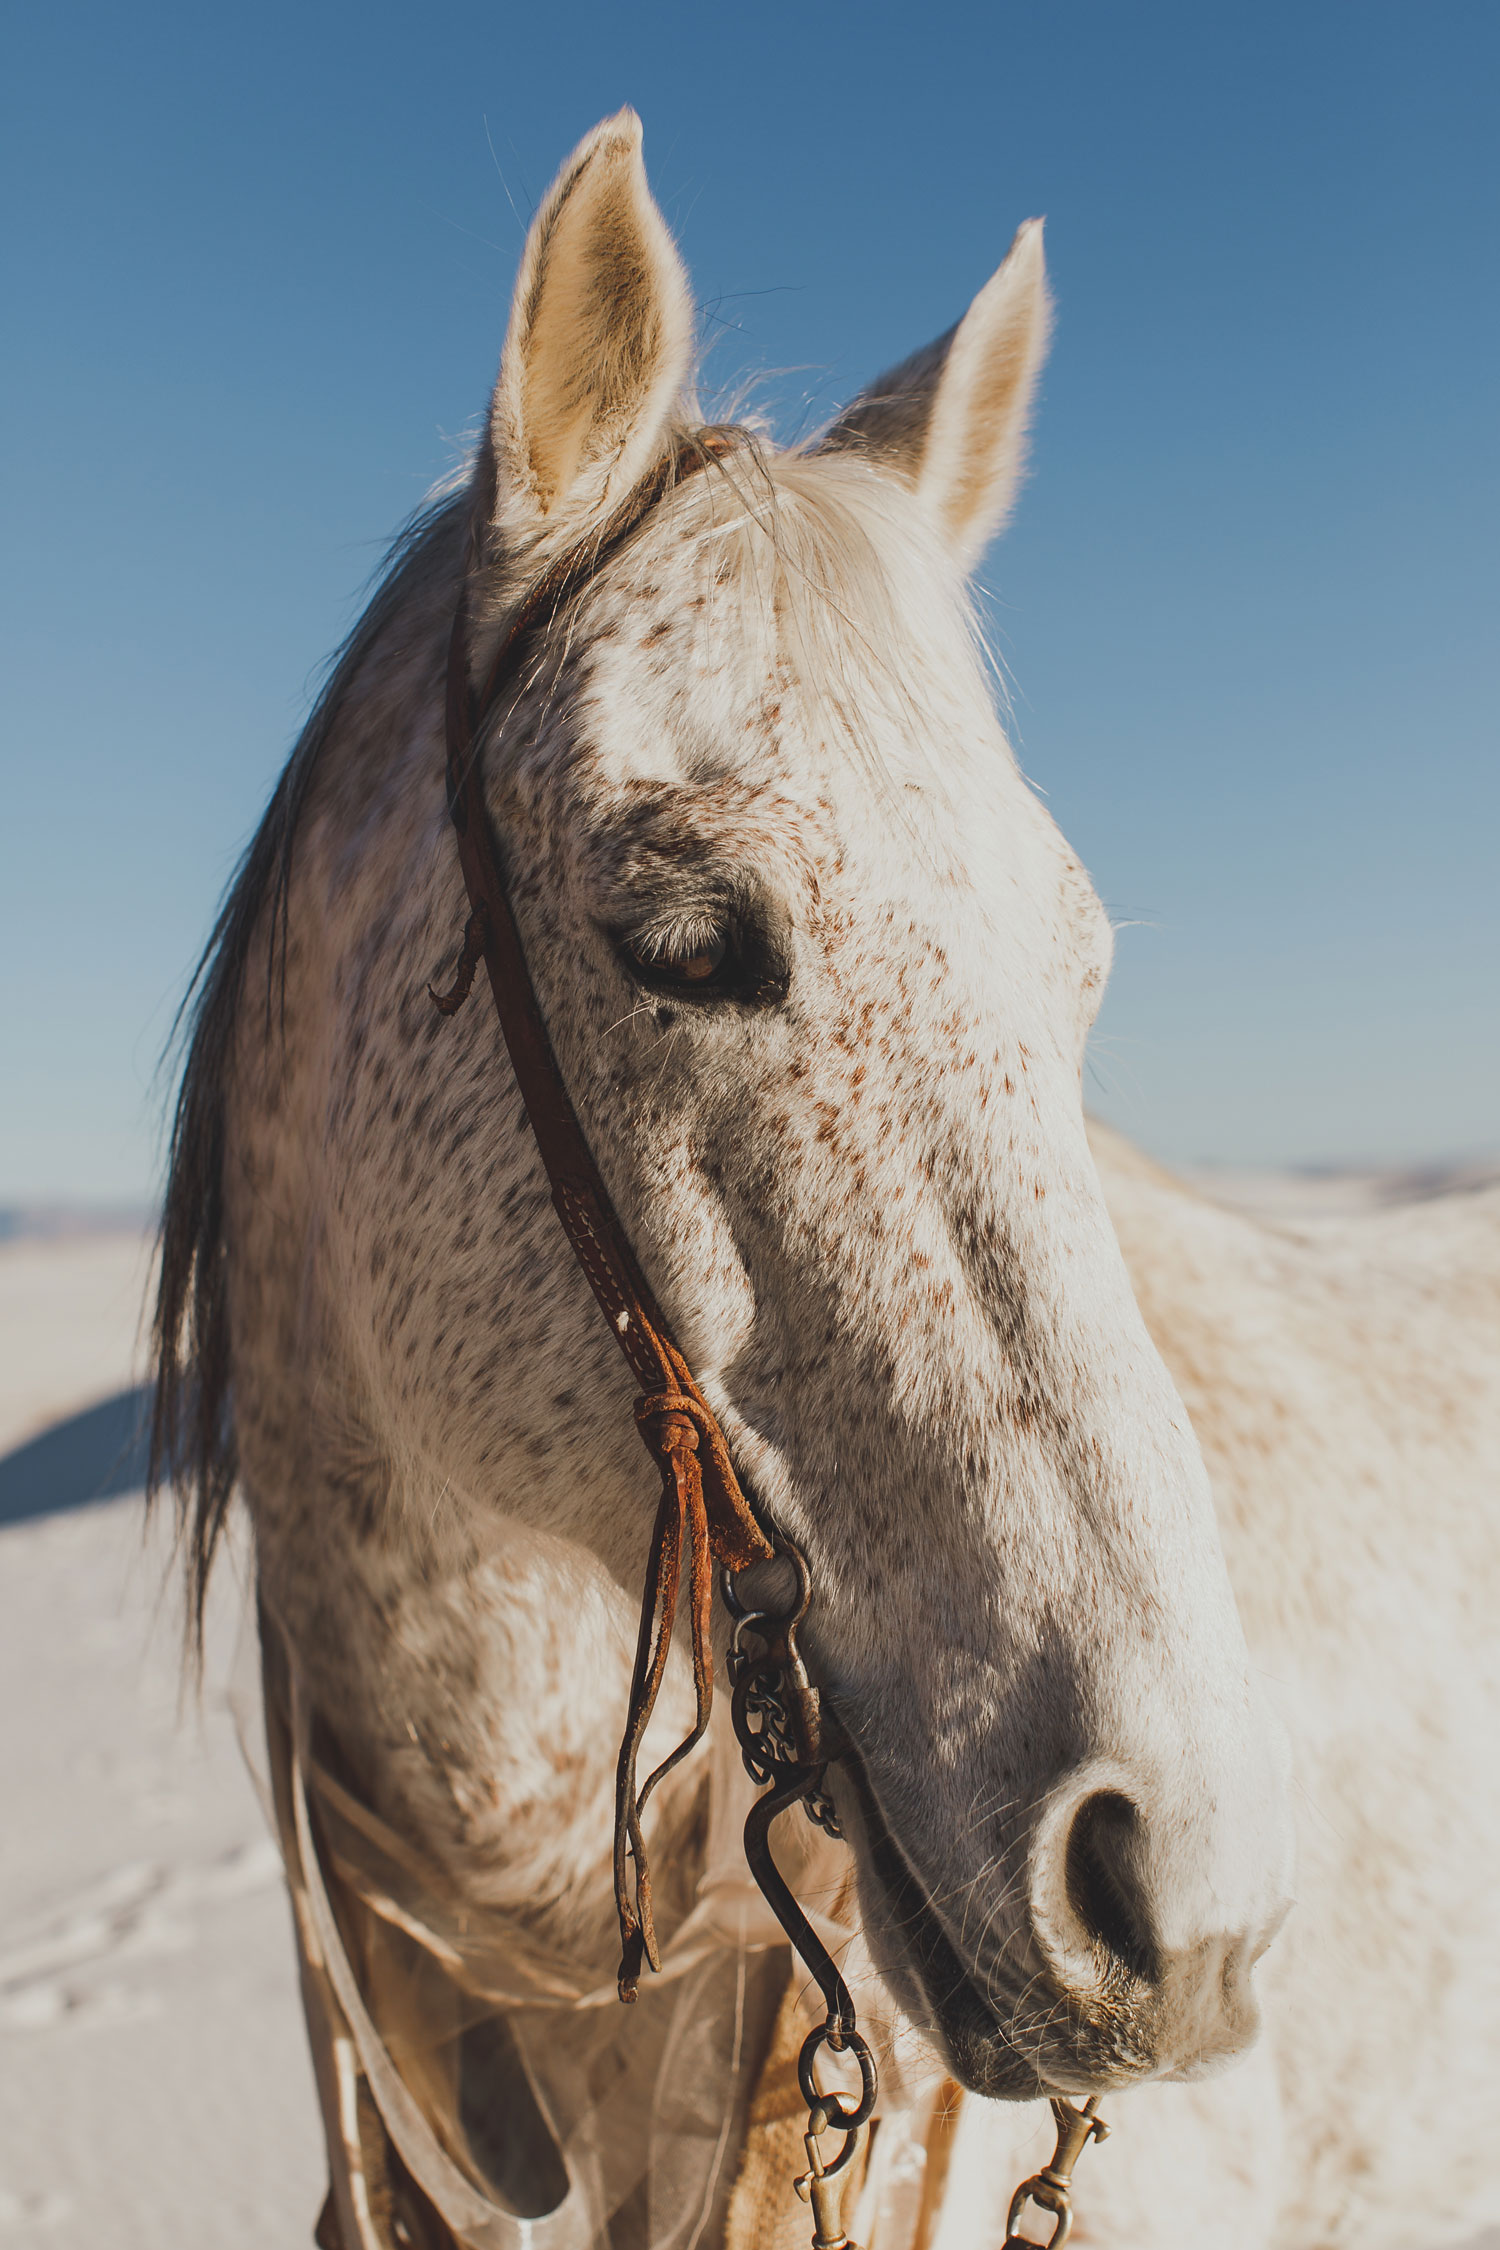 engagement photo shoot at White Sands National Monument in New Mexico engagement photos horse